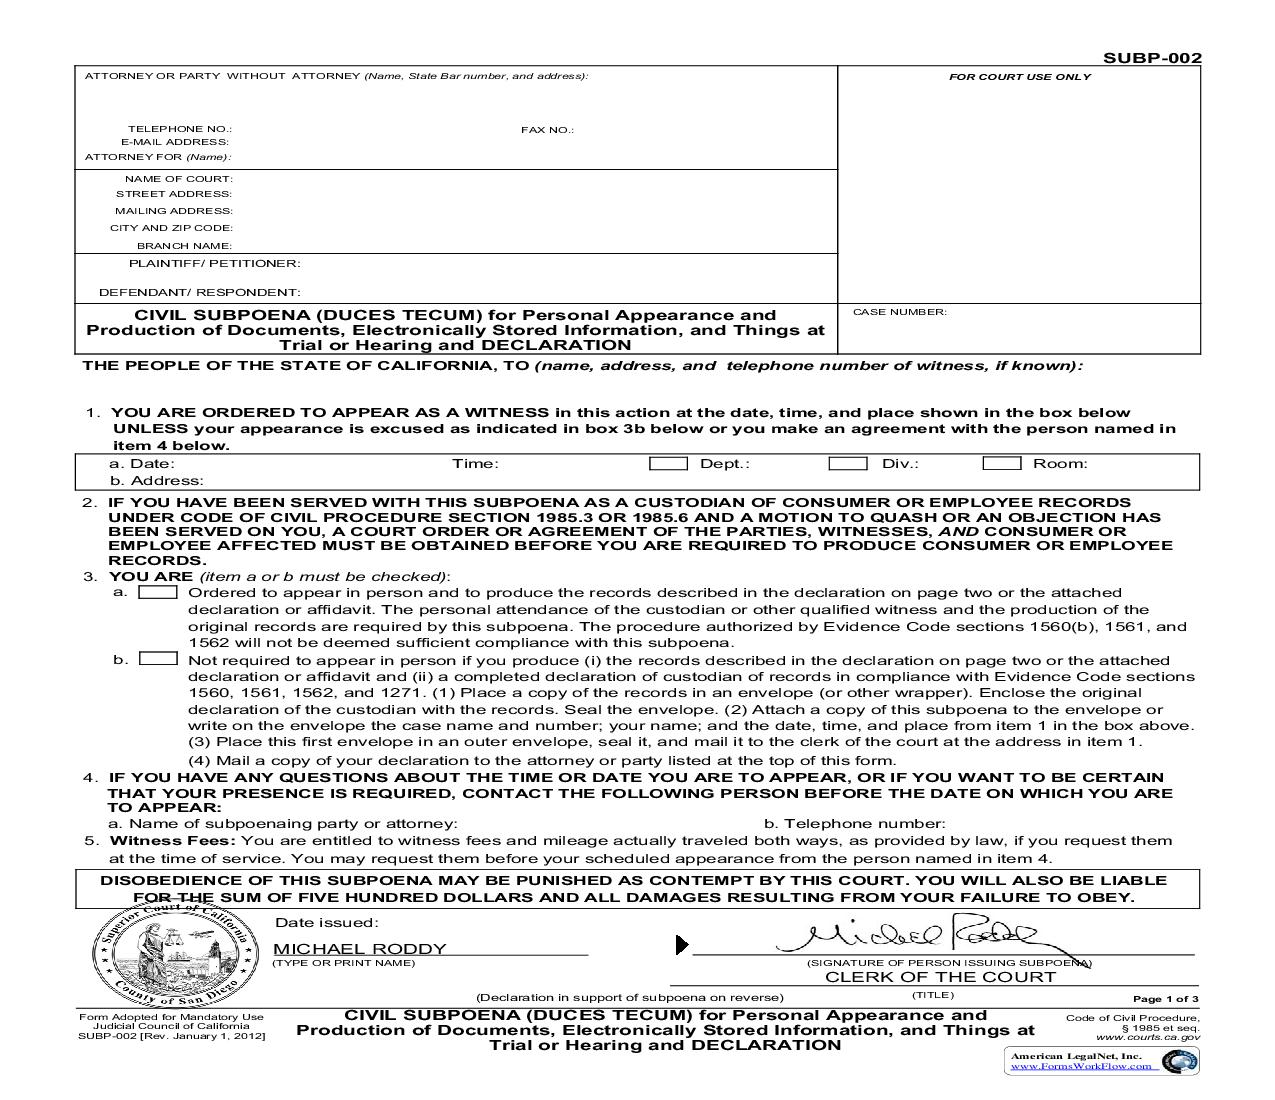 Civil Subpoena (Dues Tecum) For Personal Appearance (San Diego Pre-Issued) {SUBP-002} | Pdf Fpdf Doc Docx | California